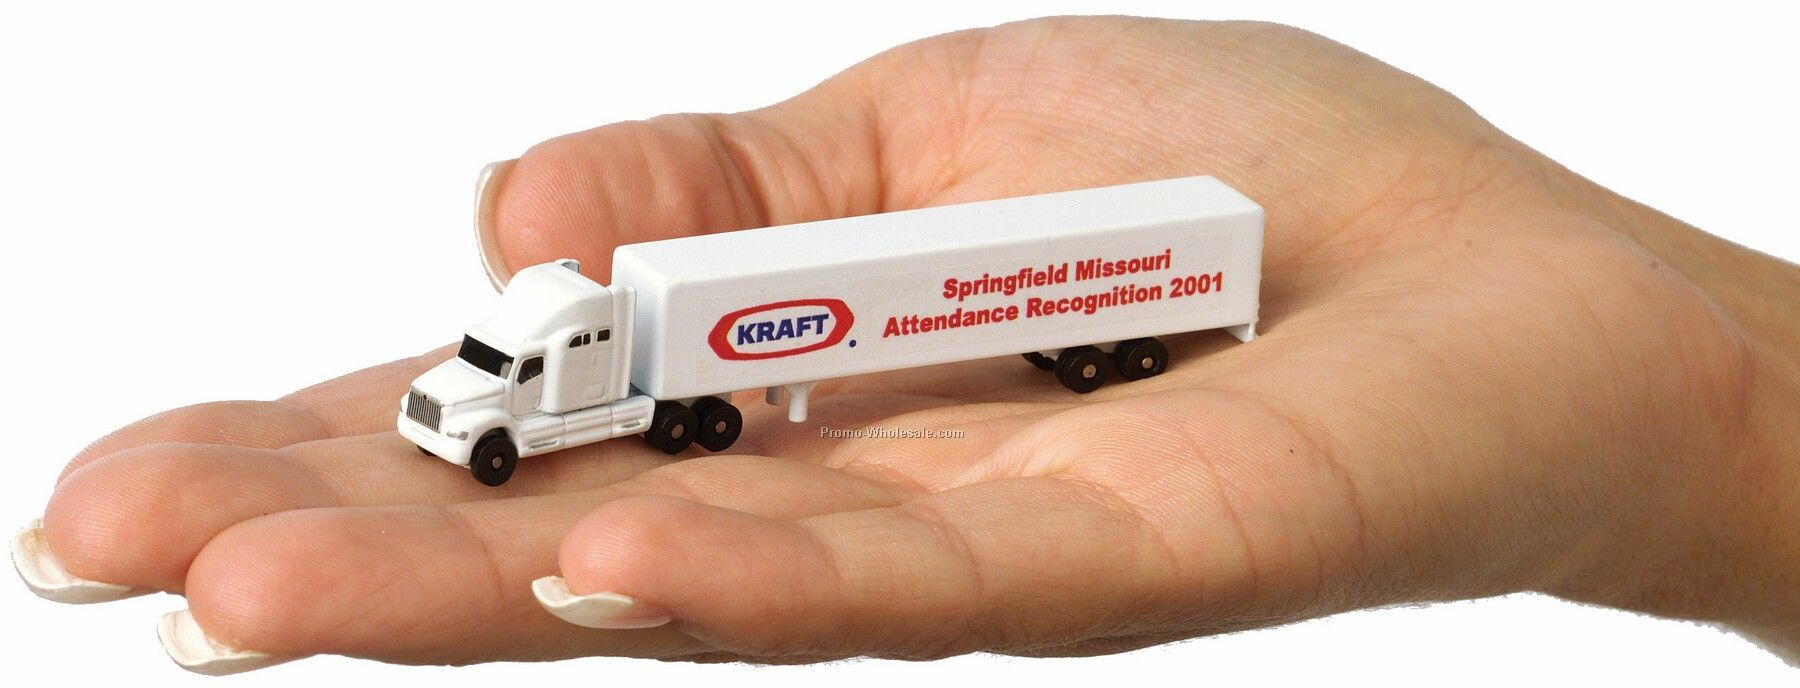 "3-1/2"" Die Cast Conventional Sleeper Truck With Trailer & Decal"